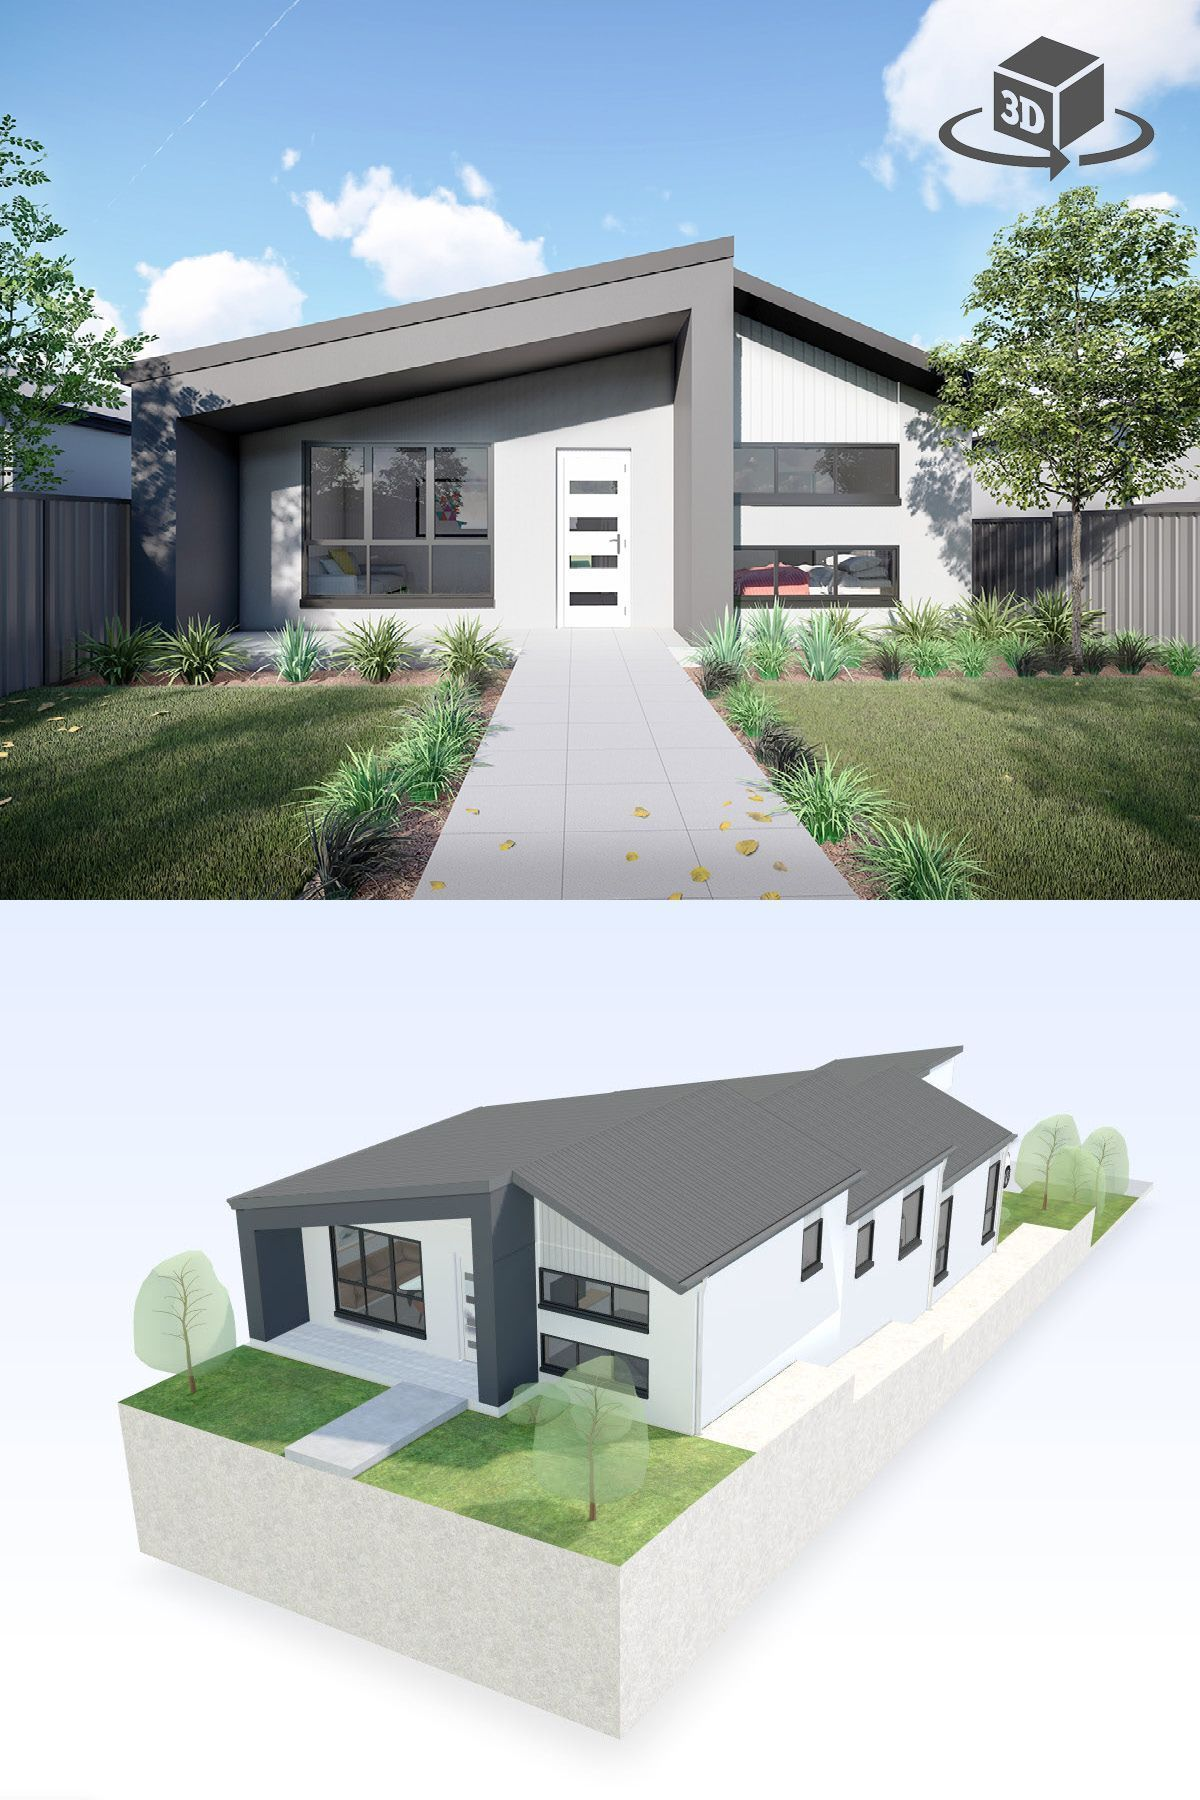 4 Bedroom House Design In Interactive 3D. Get Your Own 3D Model Today At Http://planto3d.com